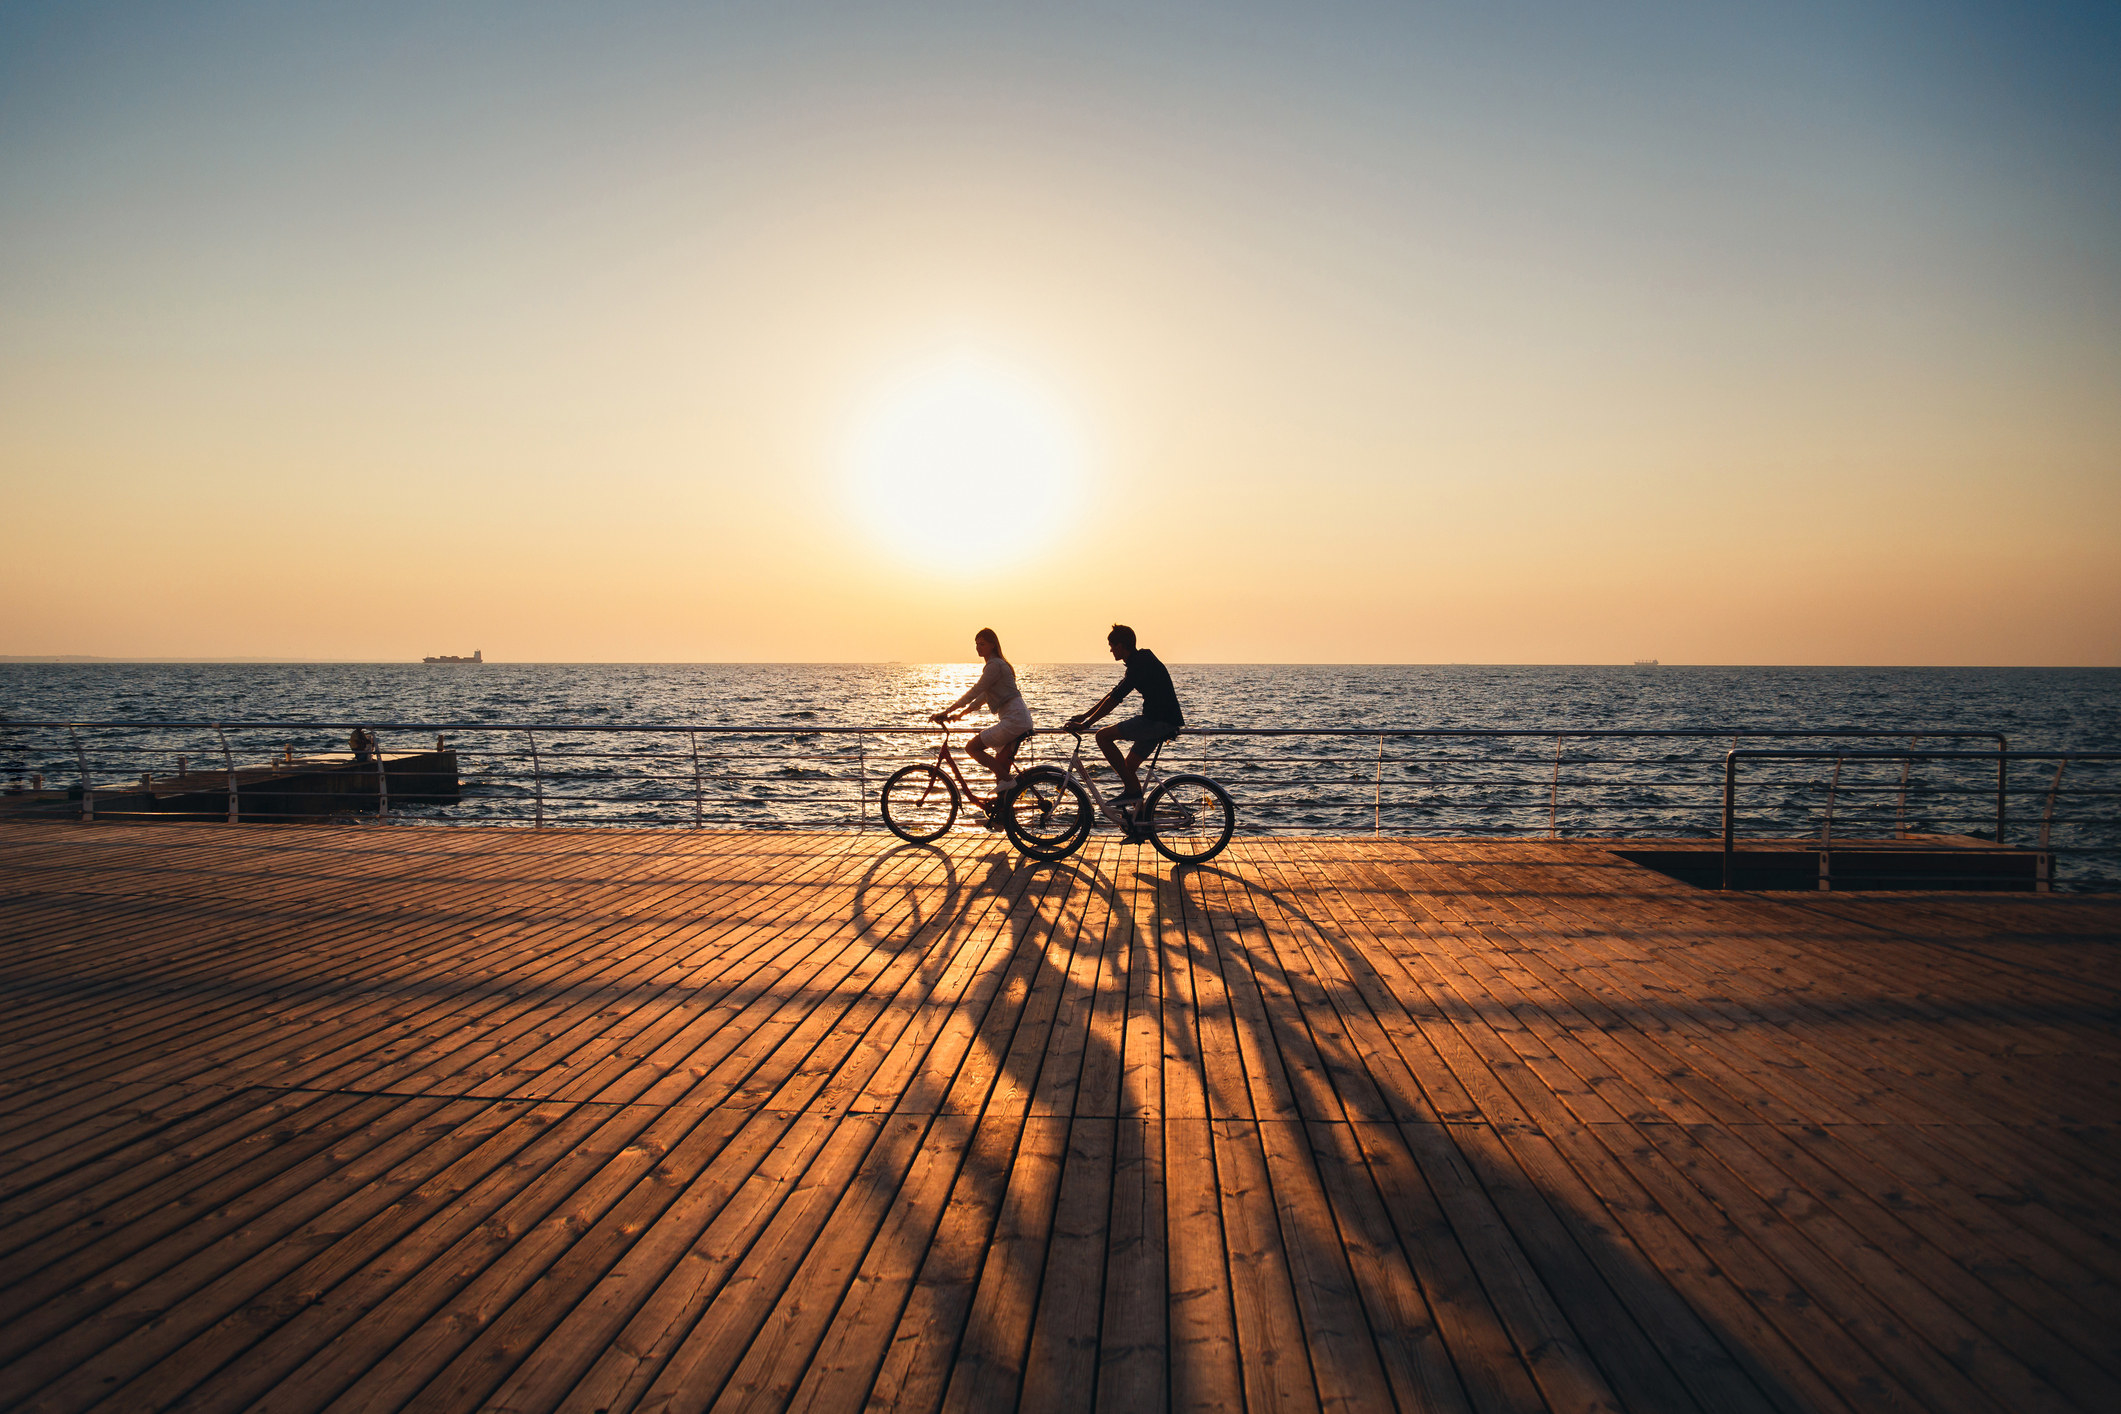 Two people riding their bikes on a boardwalk.